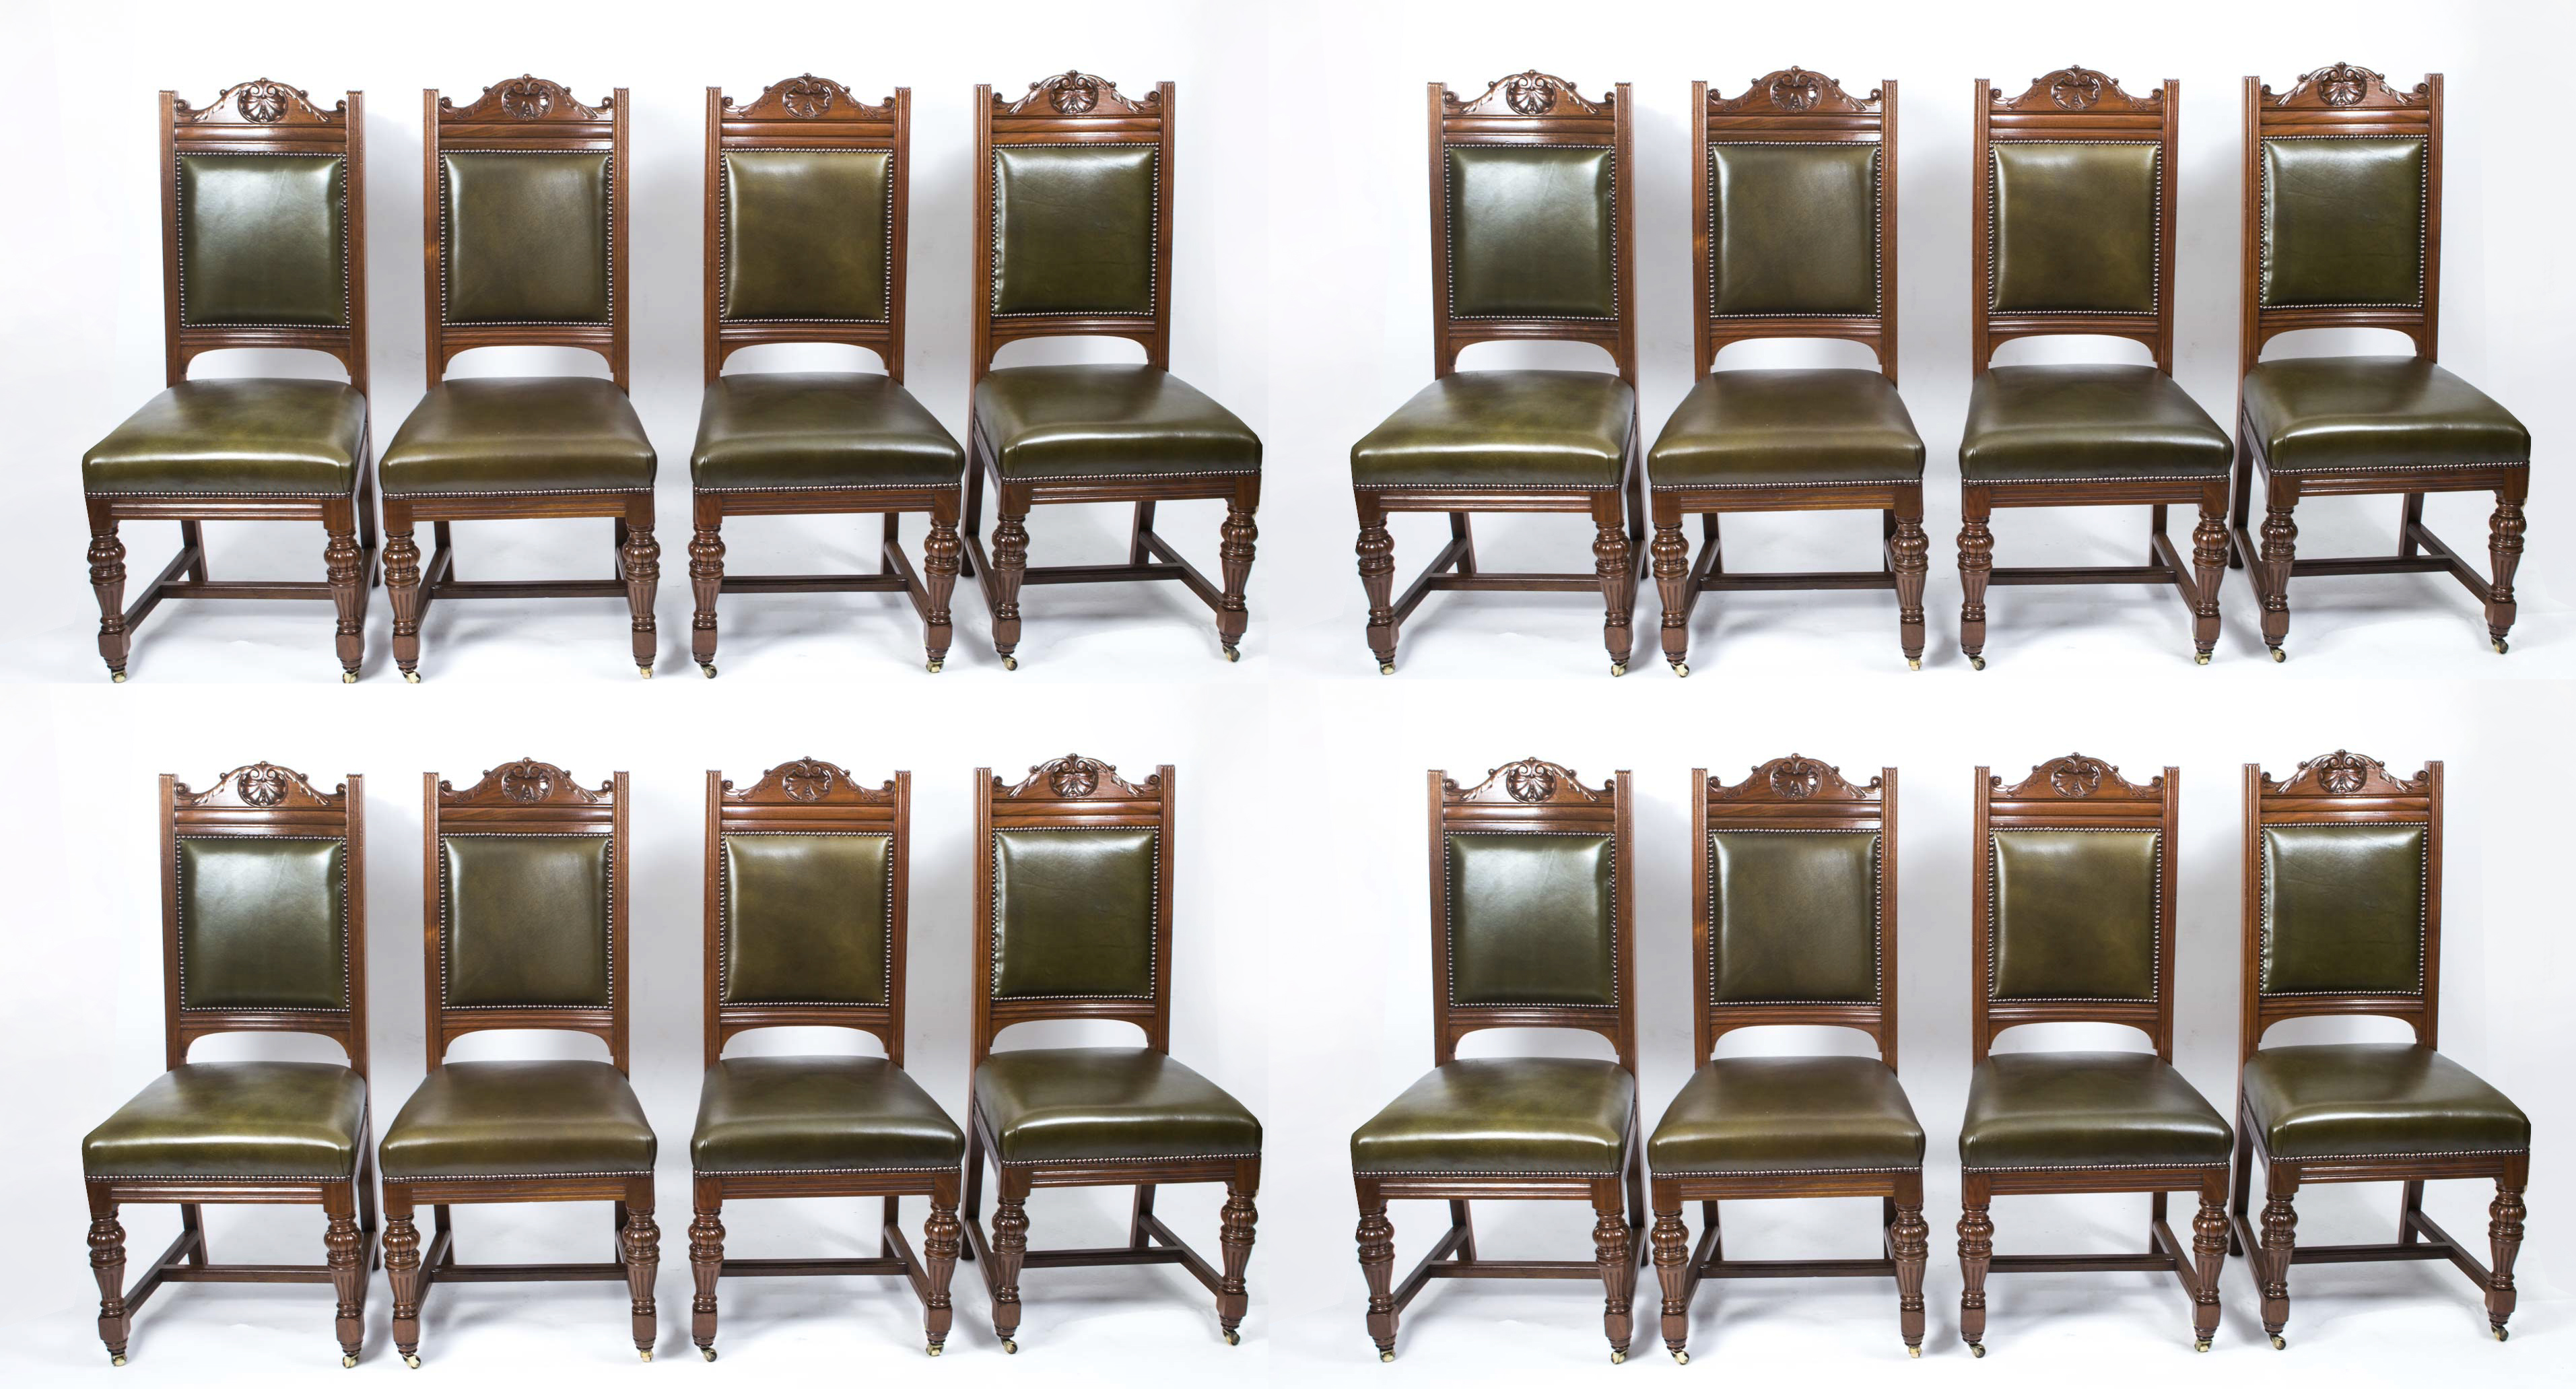 Antique victorian dining chairs - Antique Victorian Dining Chairs 38